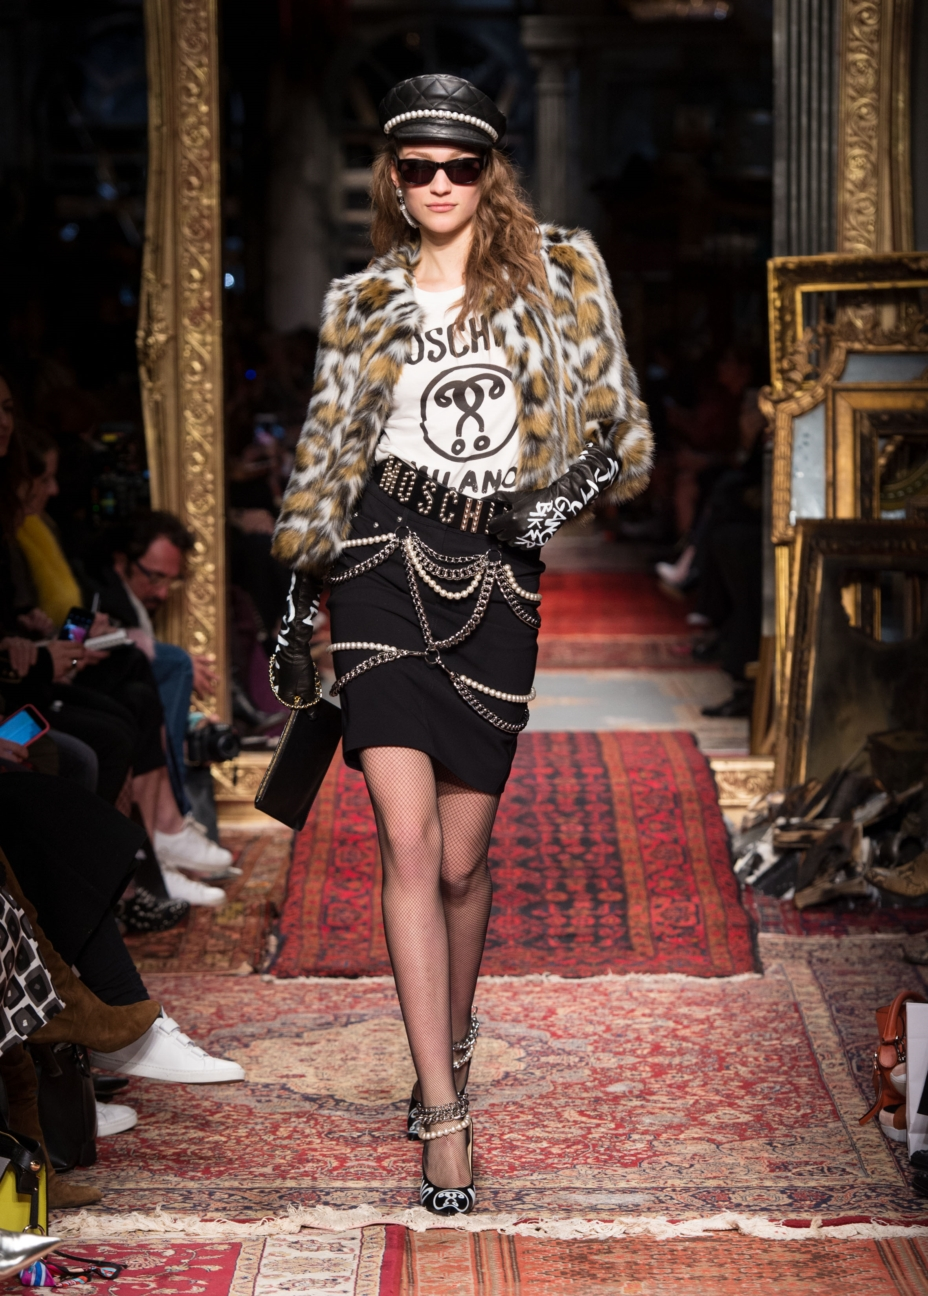 moschino-milan-fashion-week-aw-16-27